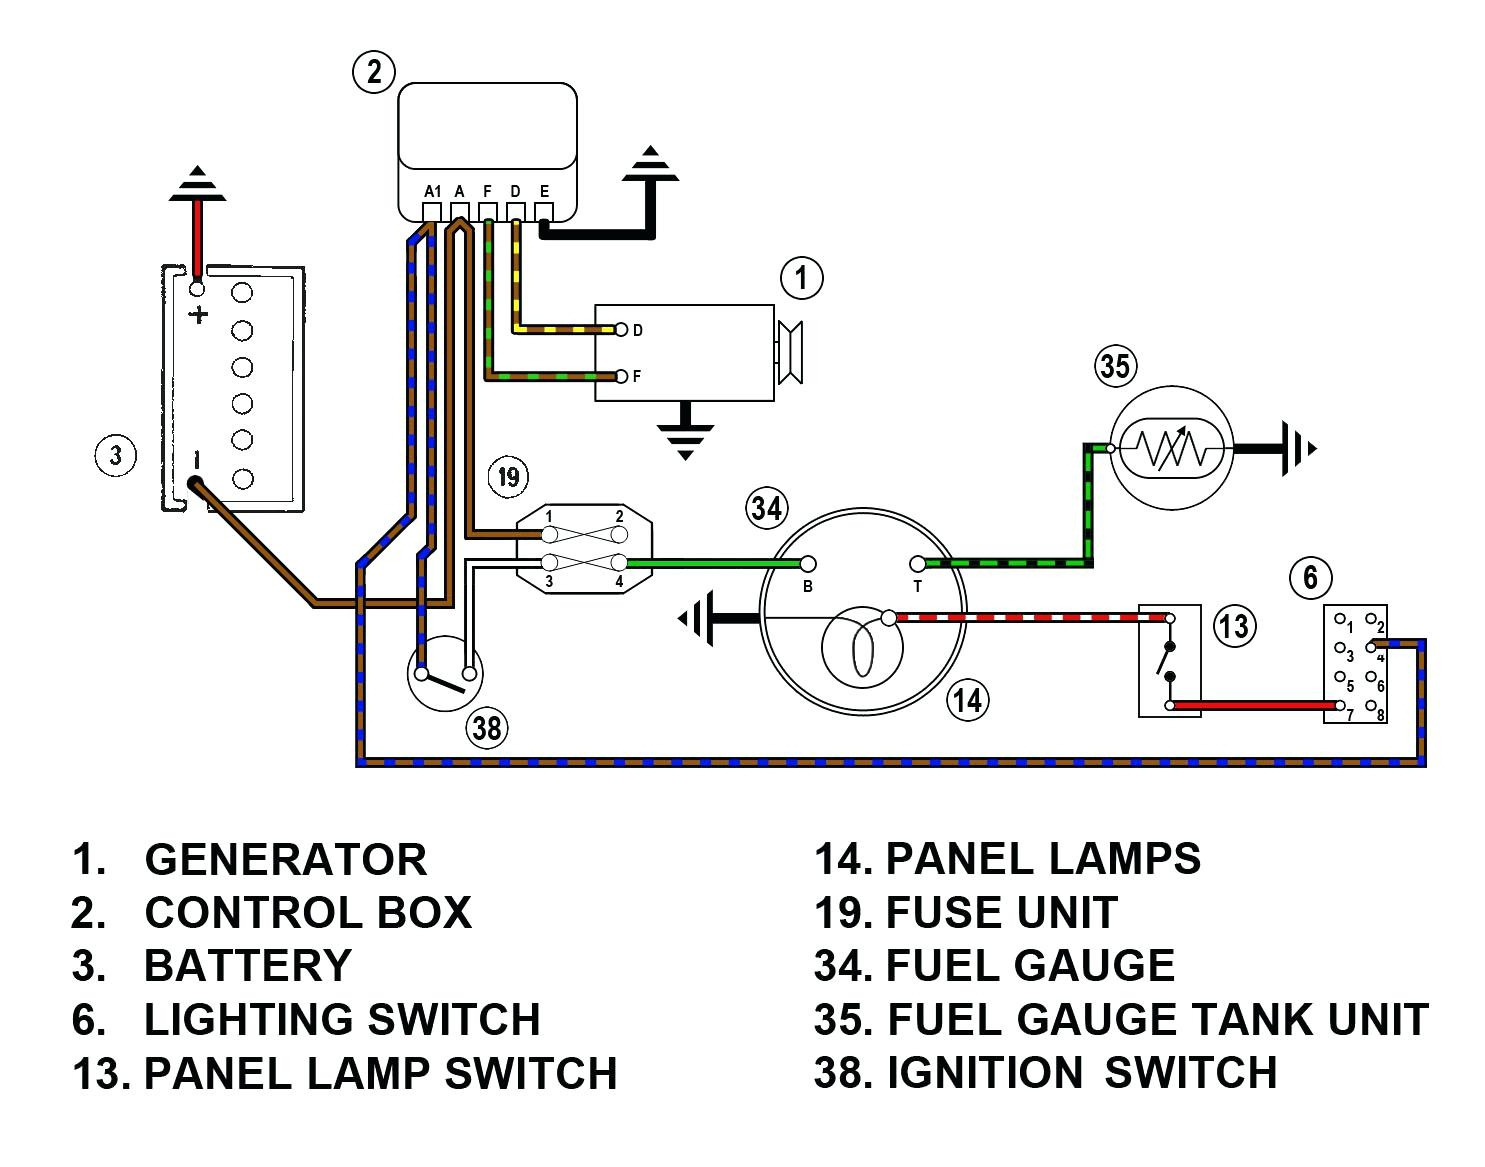 harley fuel gauge wiring diagram Collection-Wiring Diagram Detail Name harley fuel gauge 17-t